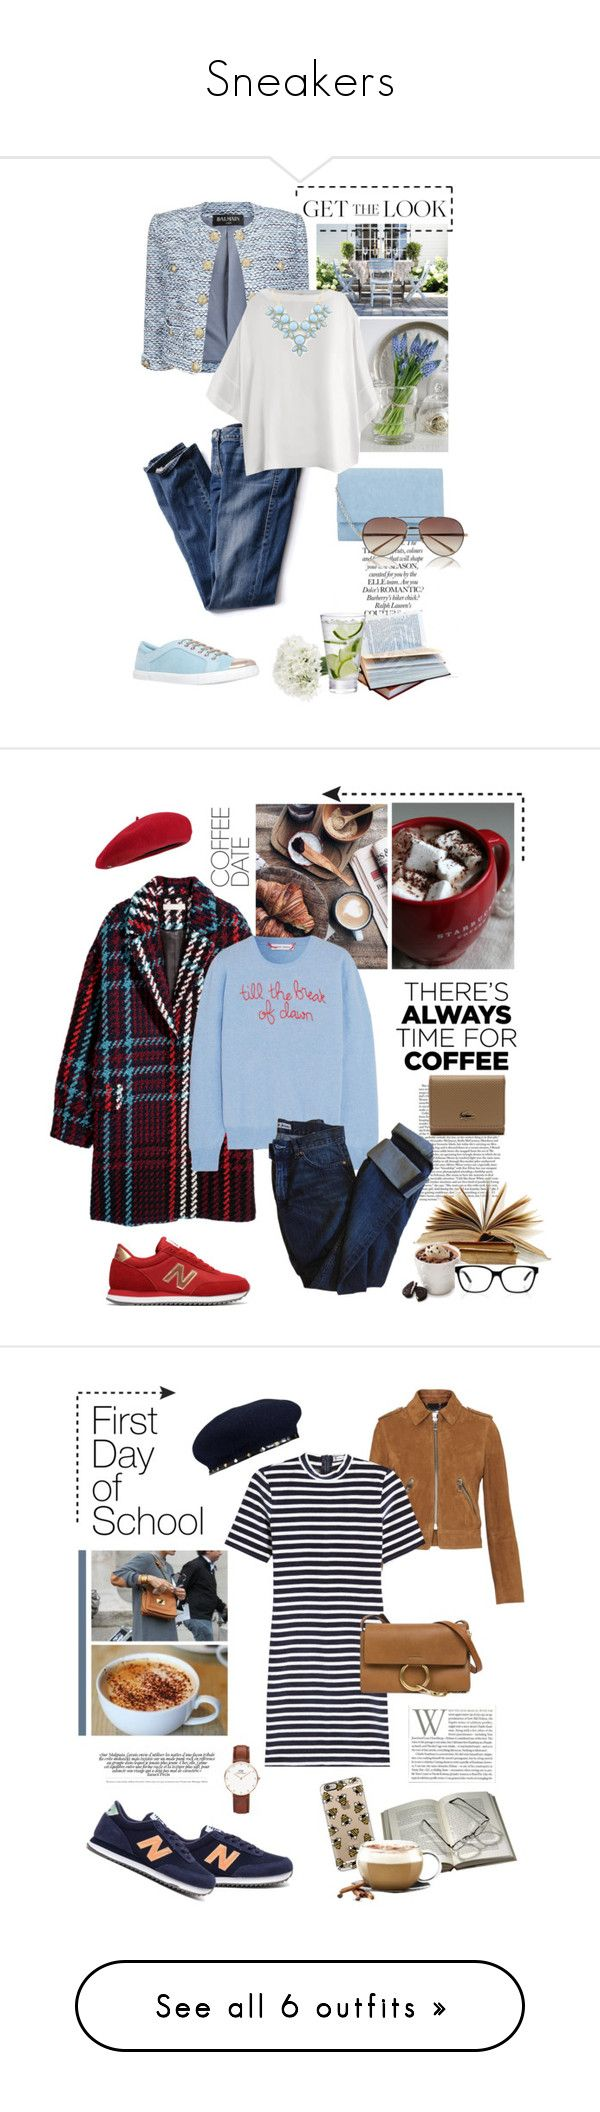 """""""Sneakers"""" by desdeportugal ❤ liked on Polyvore featuring Balmain, Carvela, Victoria's Secret, Herz, John Lewis, Givenchy, Linda Farrow, Lingua Franca, New Balance and Fivestory"""